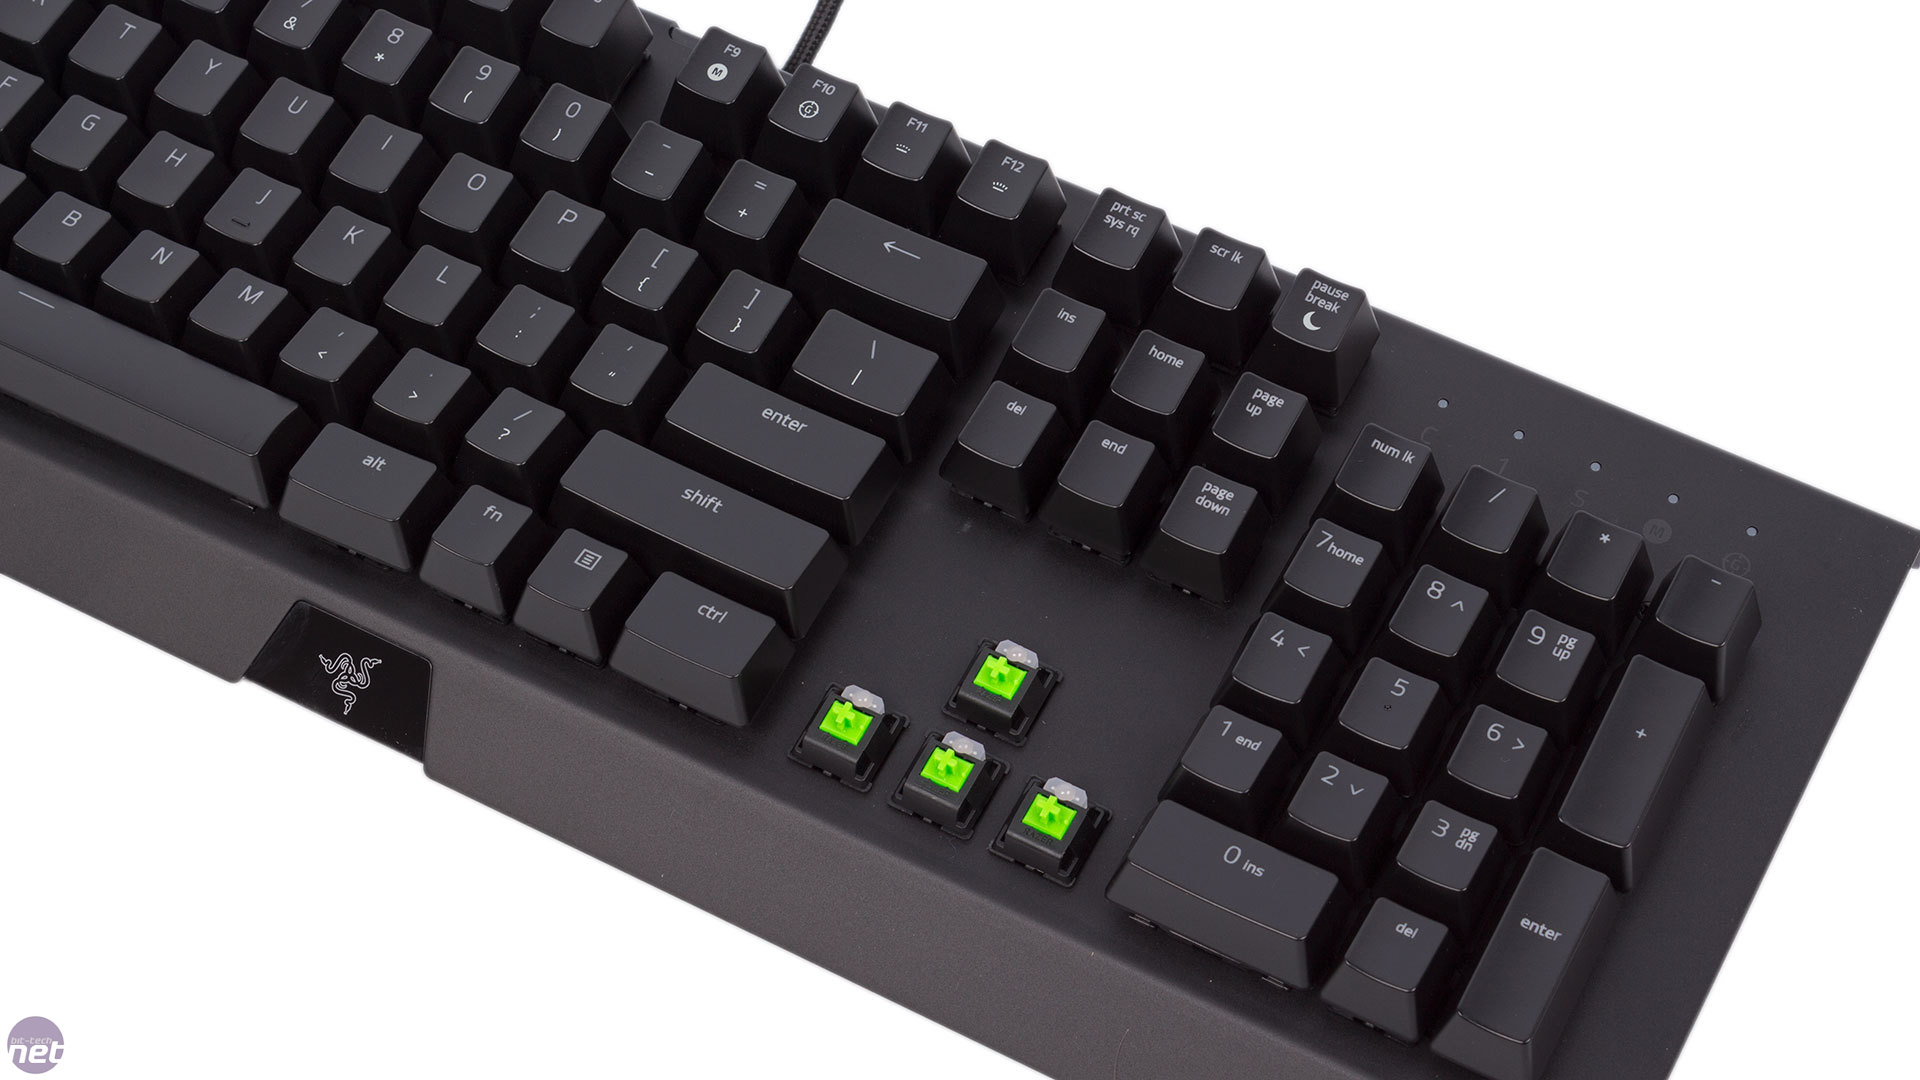 Razer Blackwidow X Chroma Review Keyboard Te Performance Software And Conclusion Click To Enlarge